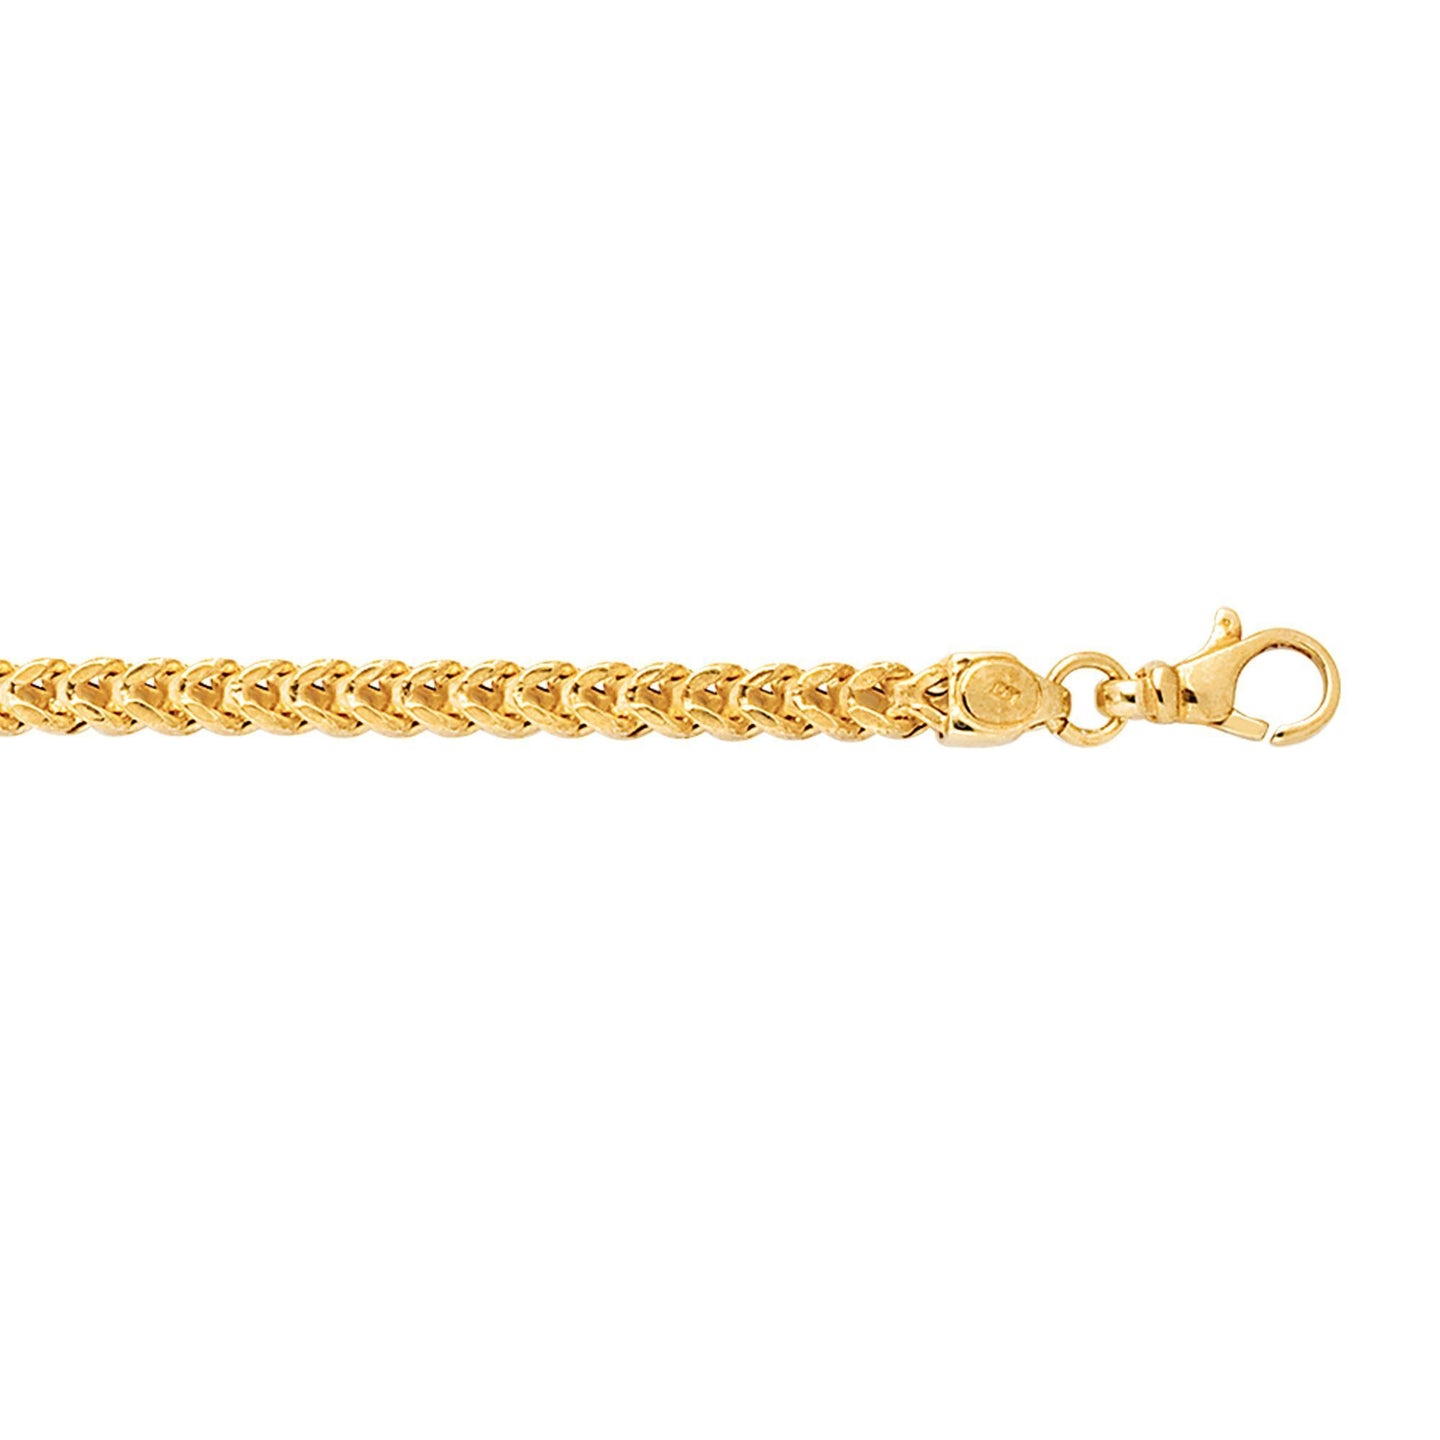 Sabel Men's 14K Yellow Gold Square Franco Chain Necklace with Pear Shape Clasp